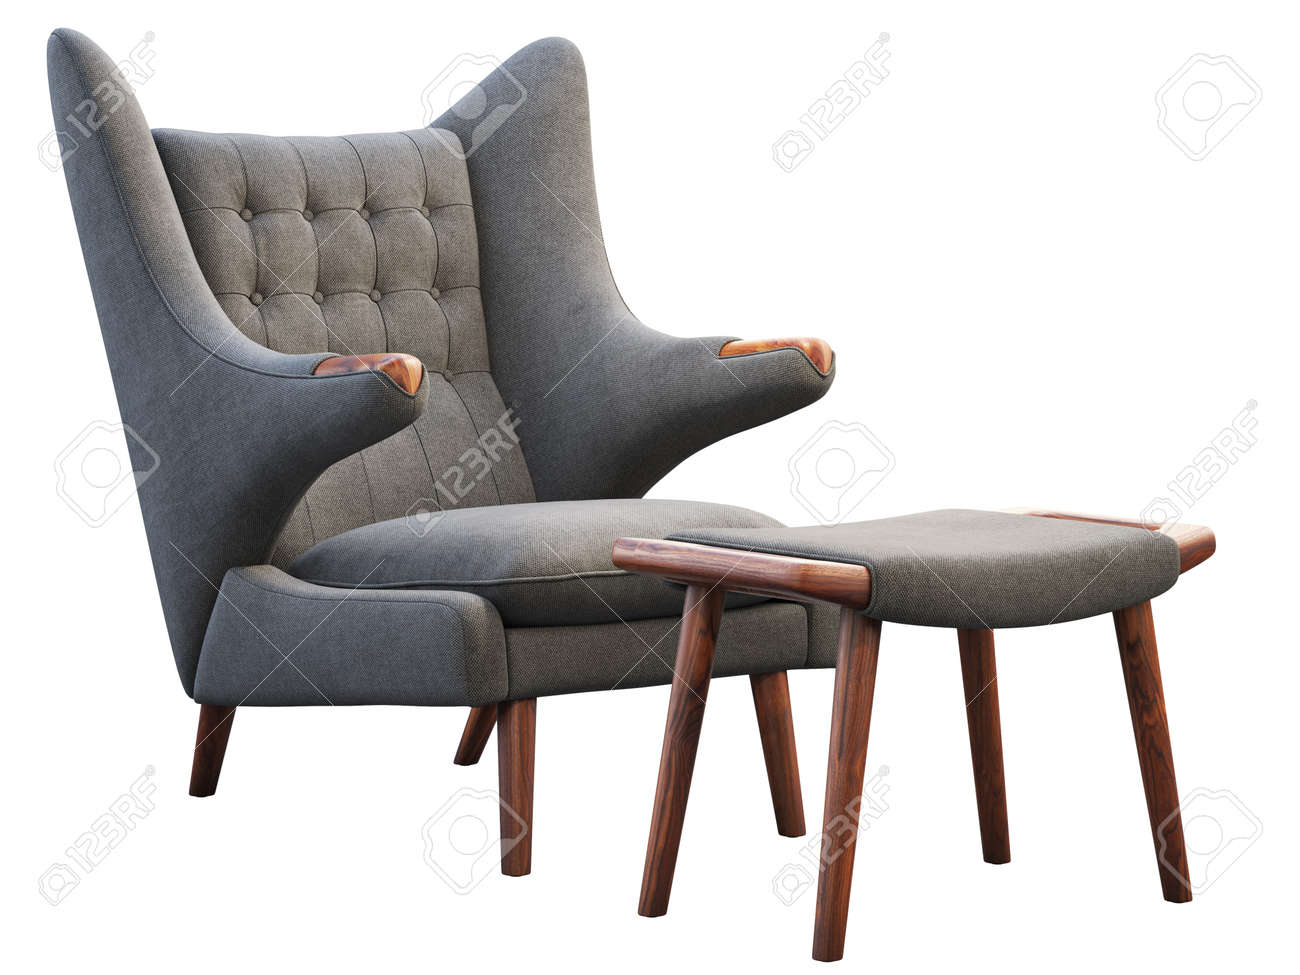 photo mid century gray fabric wing chair and footrest fabric upholstery armchair with wooden legs on white